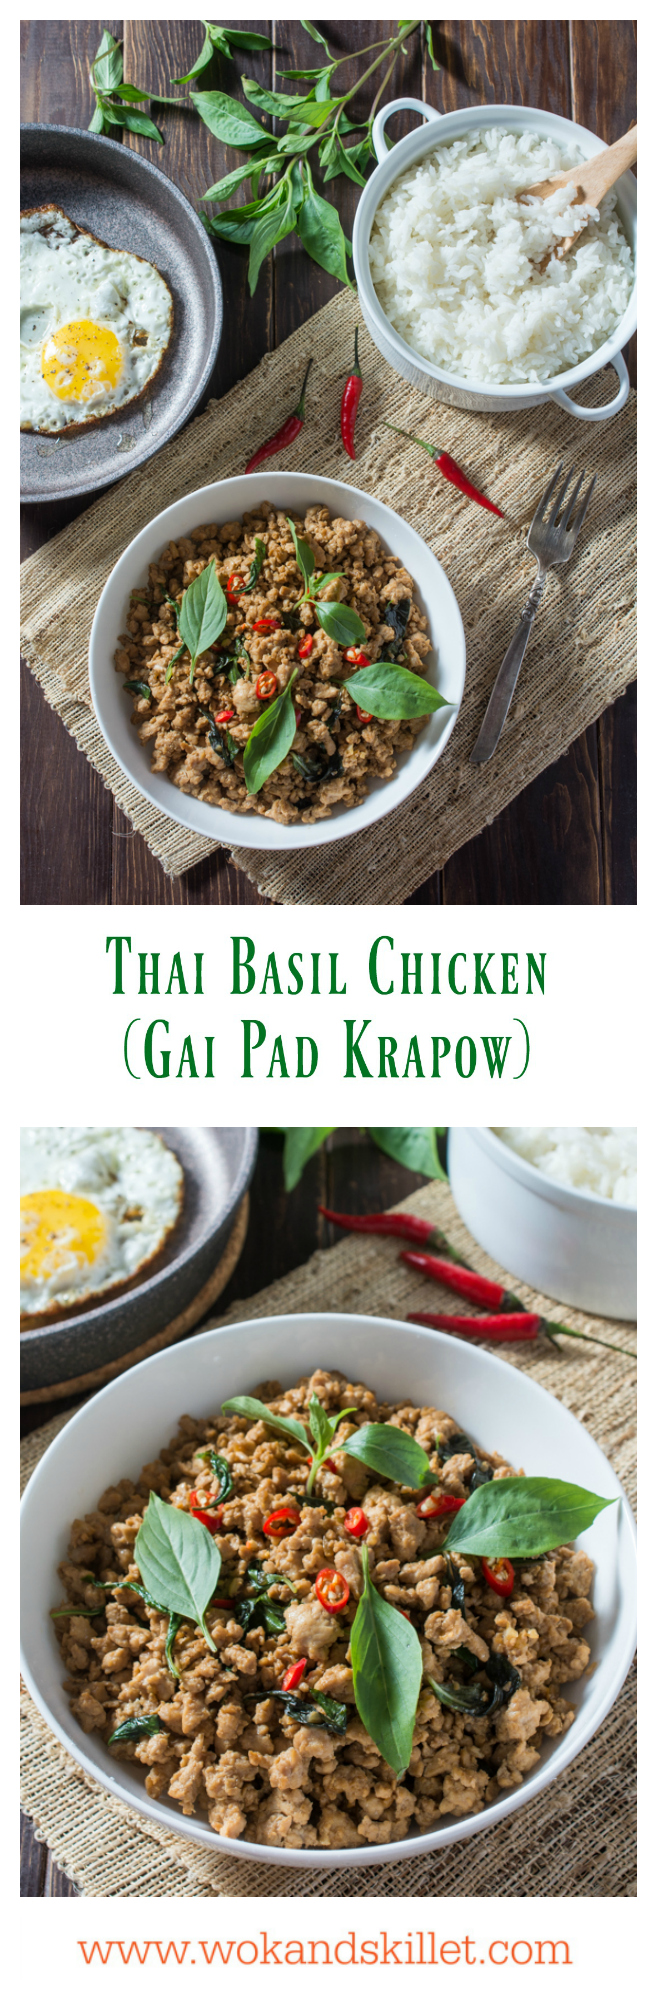 Thai Basil Chicken (Gai Pad Krapow) is a classic Thai stir-fry where the amazing aroma of basil pairs so well with the savory sauce. Serve over steamed jasmine rice and top with a fried egg for the ultimate Thai comfort food.